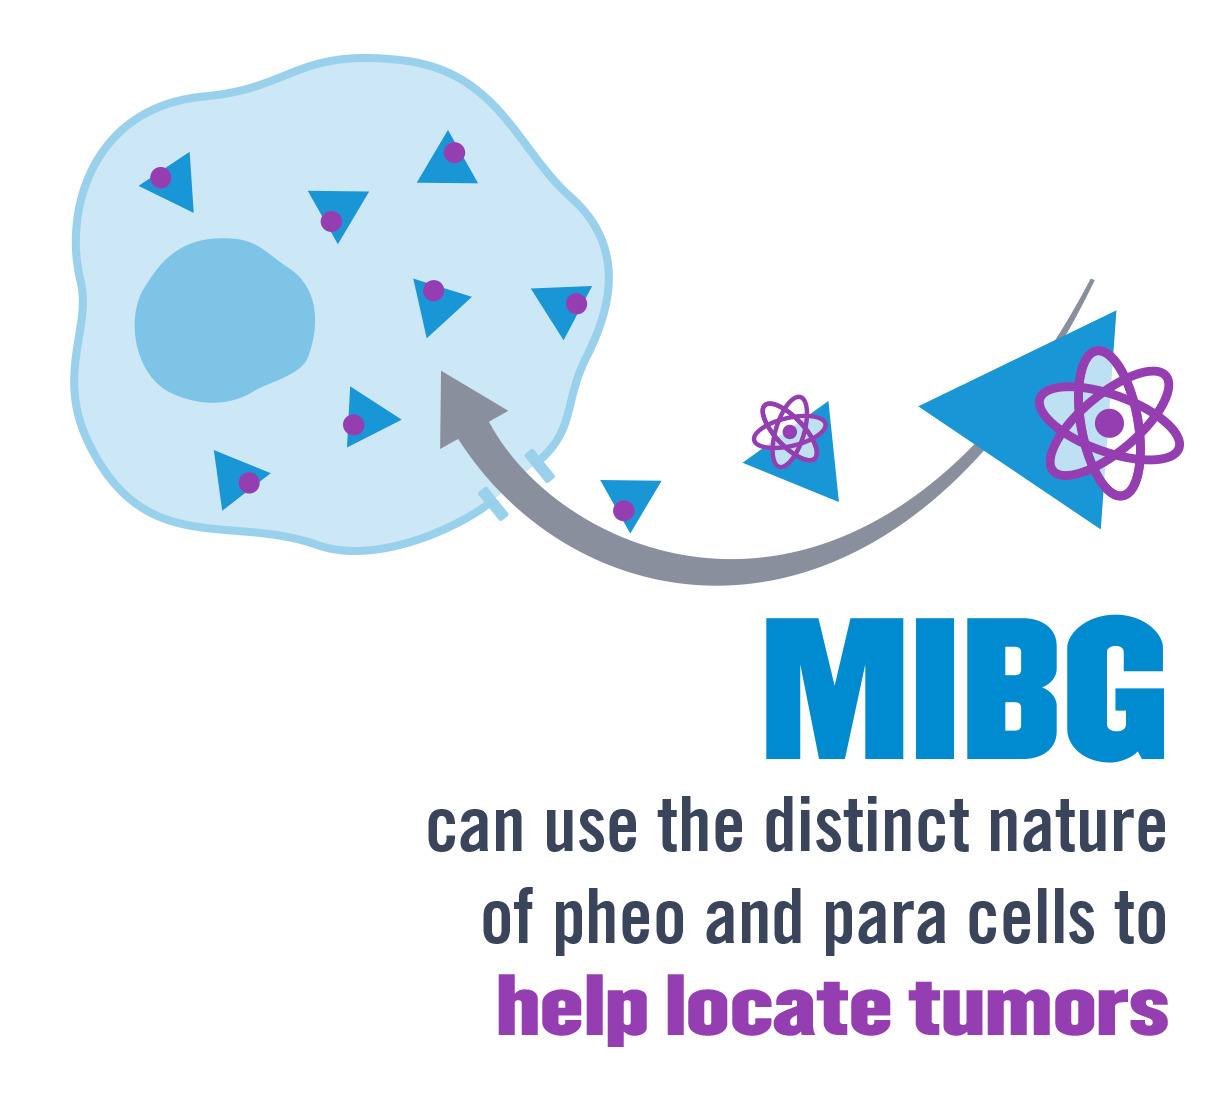 MIBG is a molecule that can be used to find pheo and para.